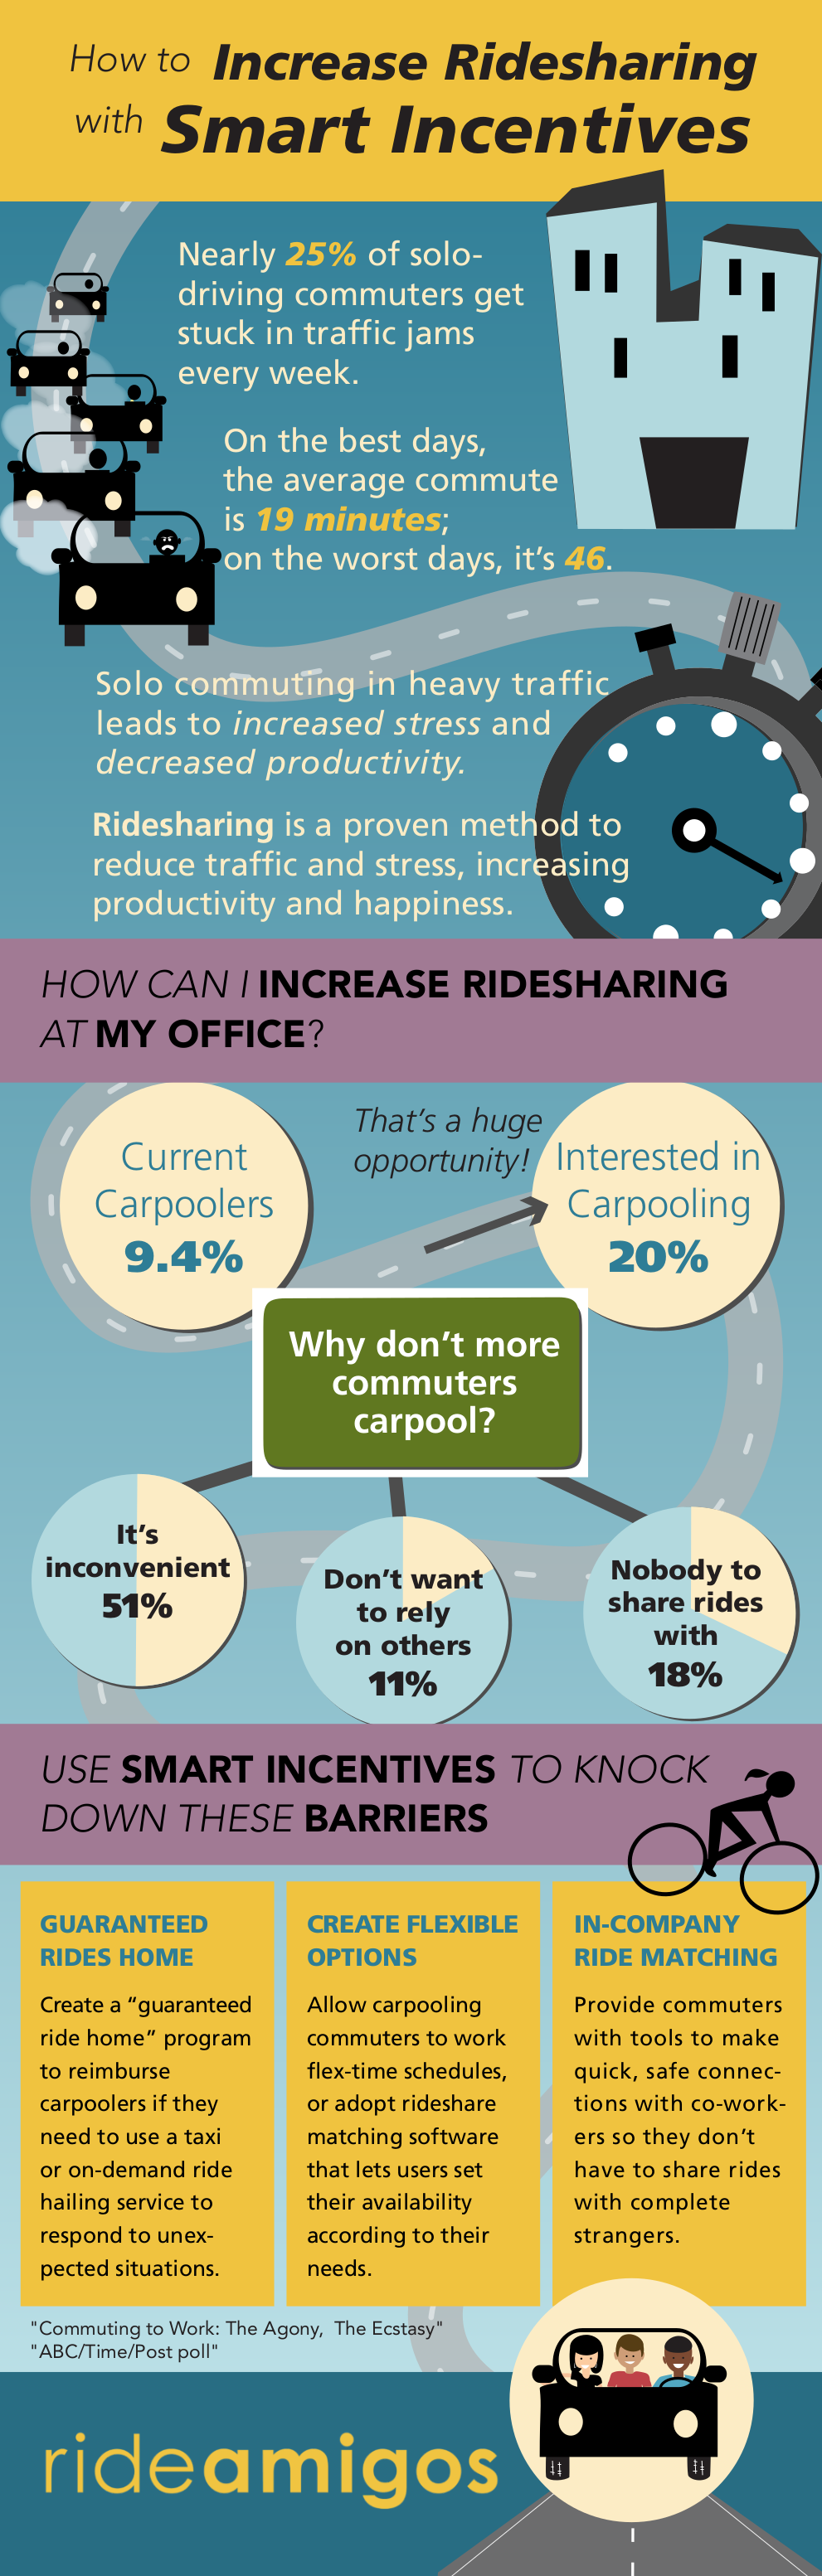 How to Use Smart Incentives to Increase Ridesharing Infographic